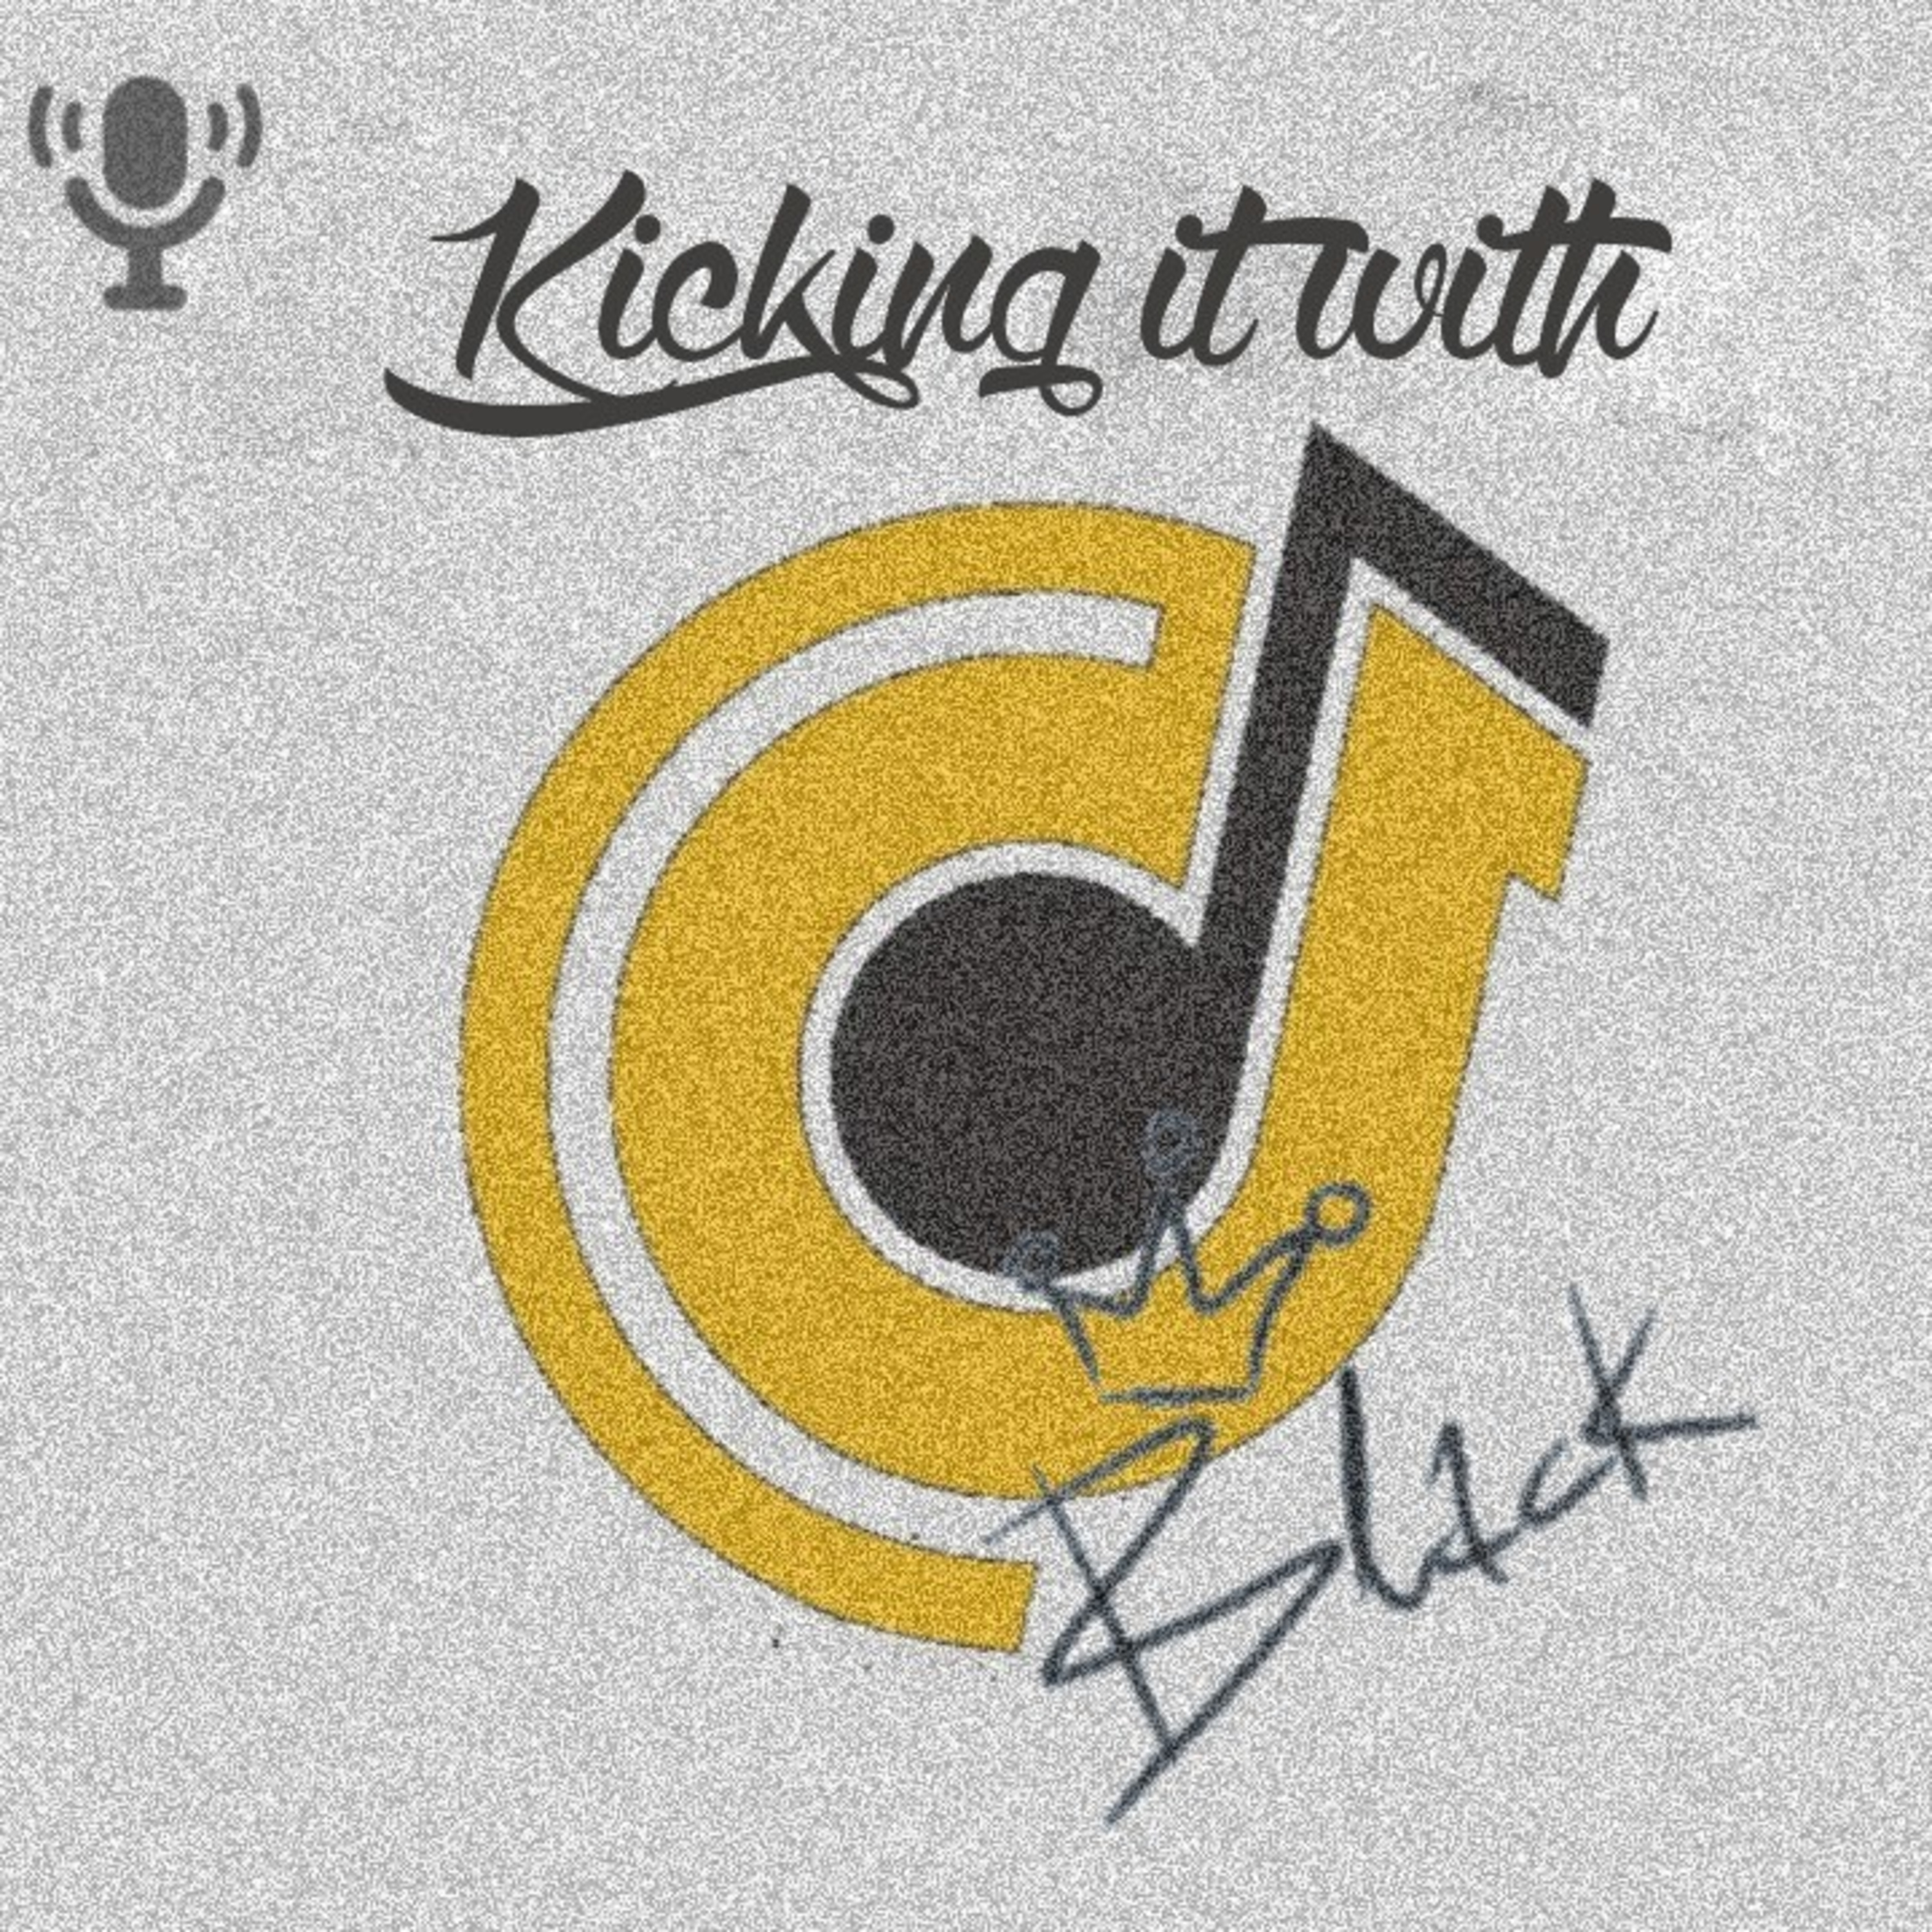 Kicking It With Black podcast